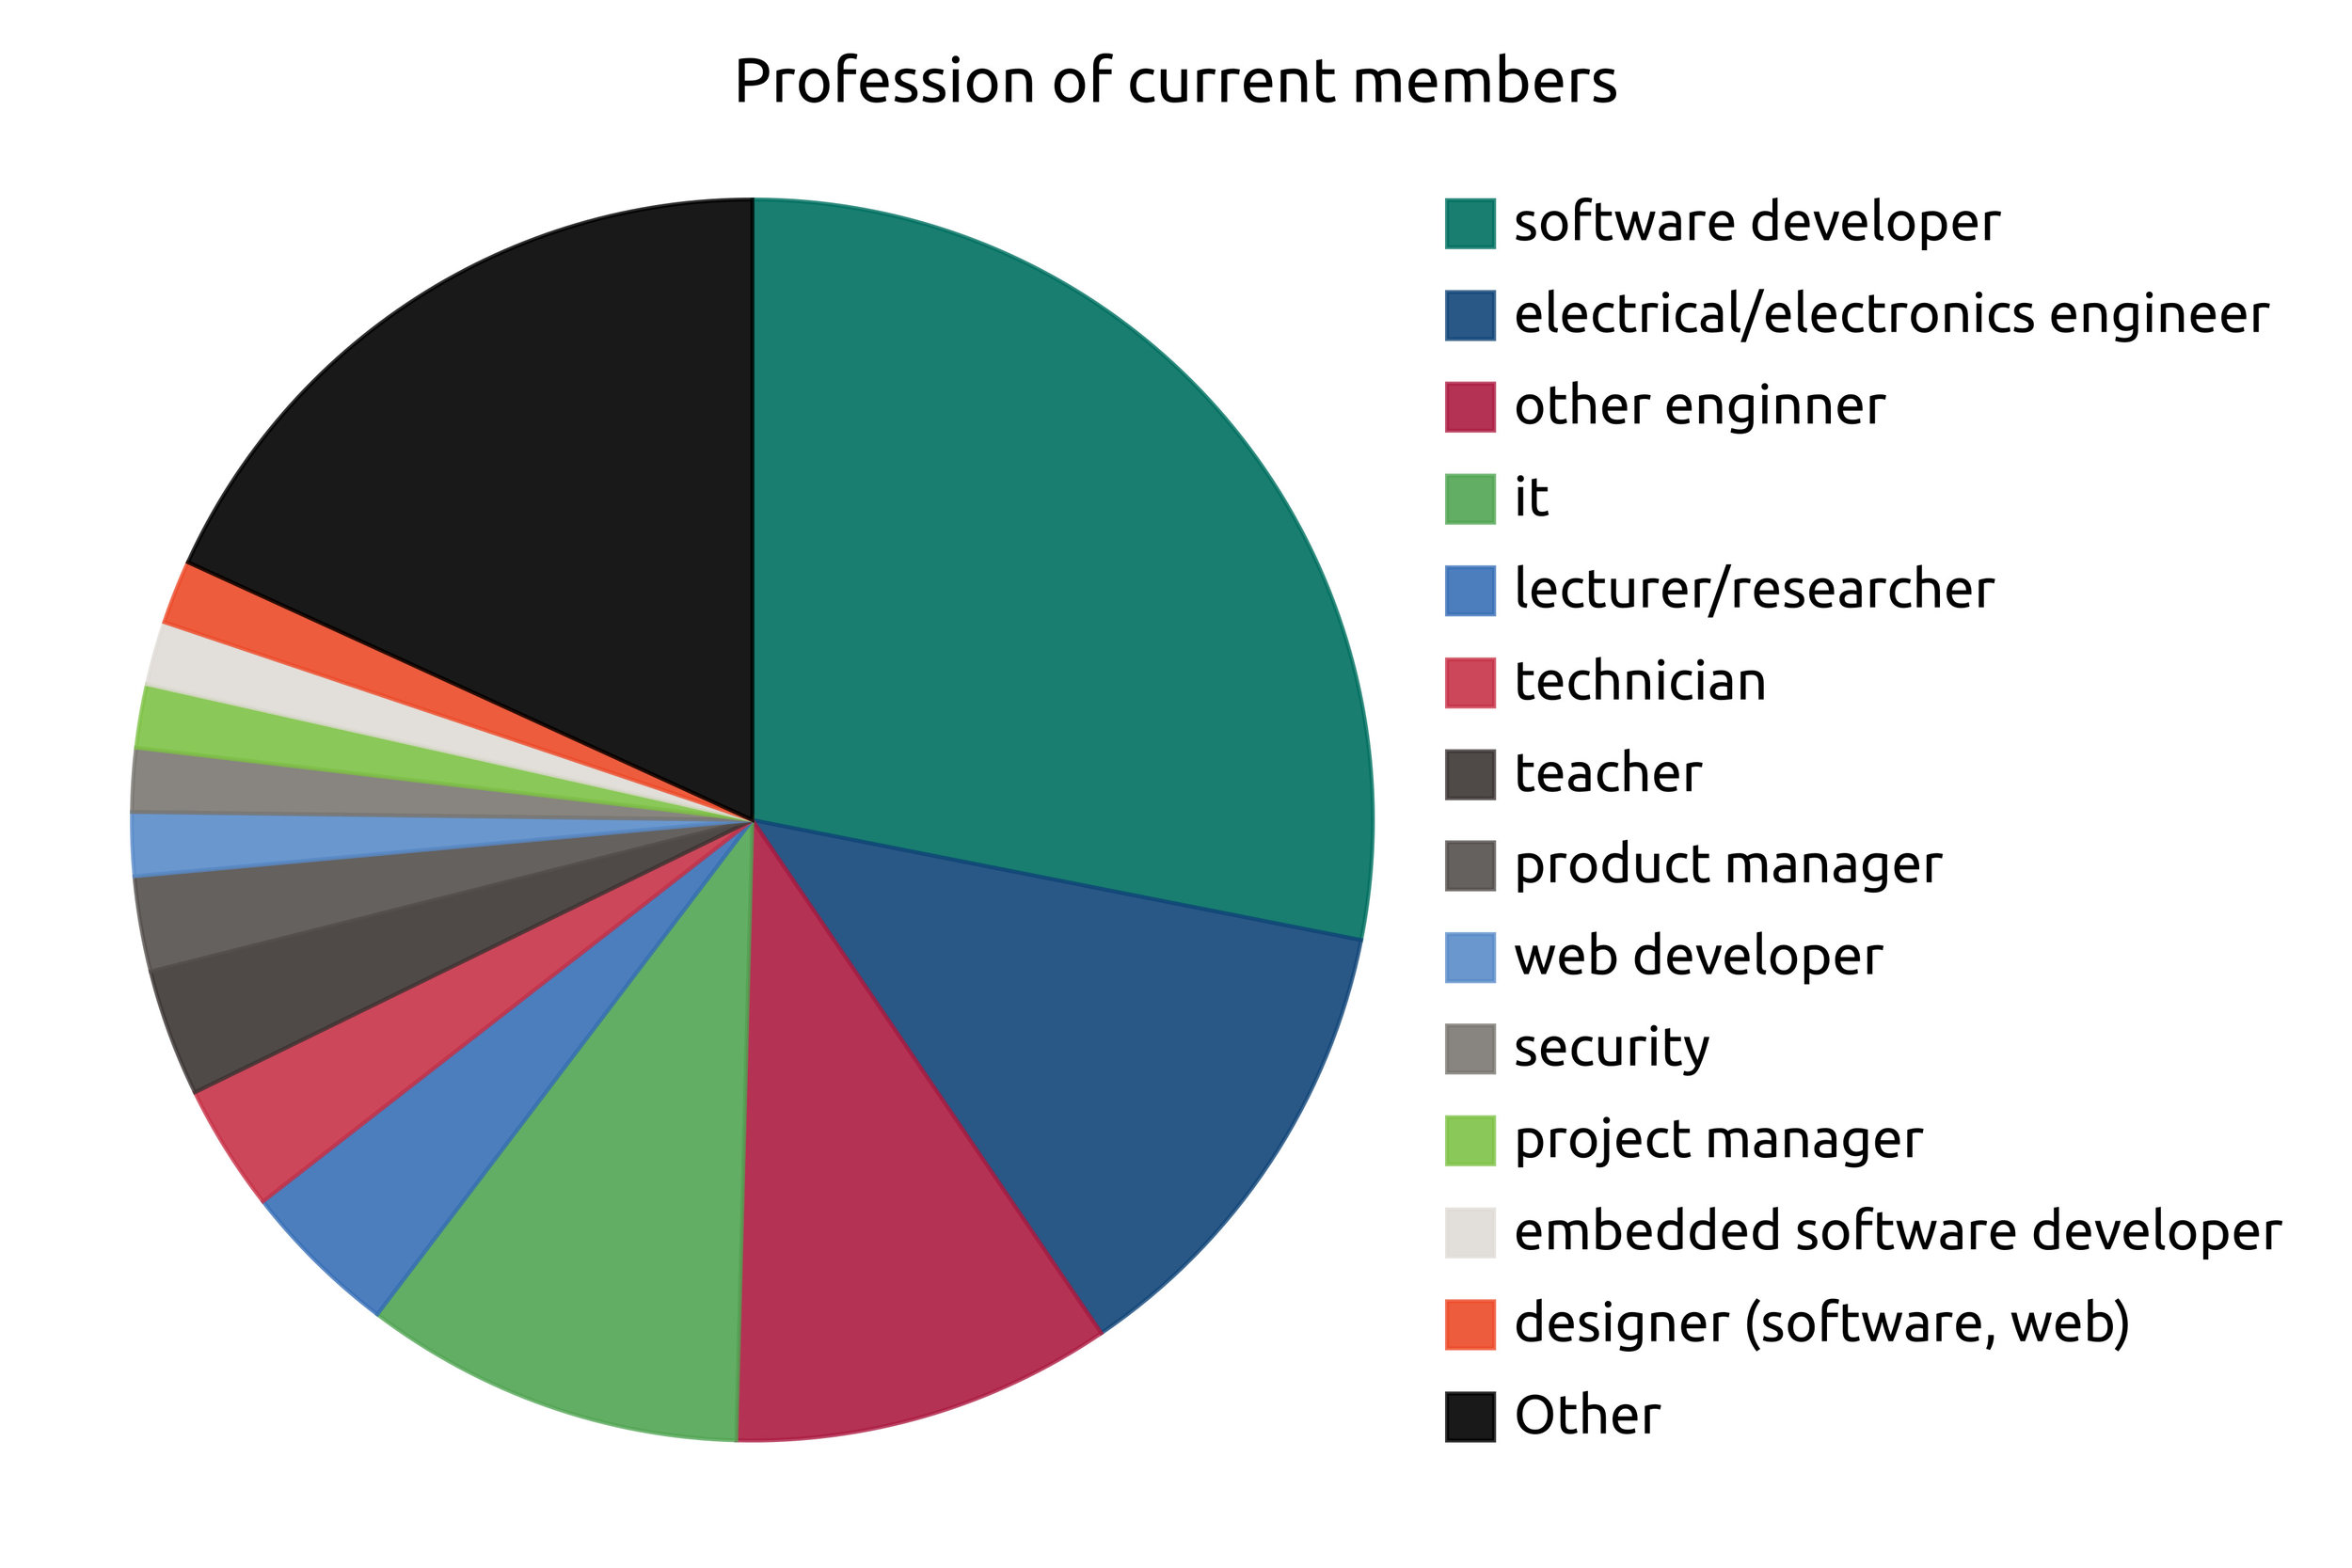 Most of our members are from technology-related industries, but we have members from many other sectors. Based on questionnaire responses.